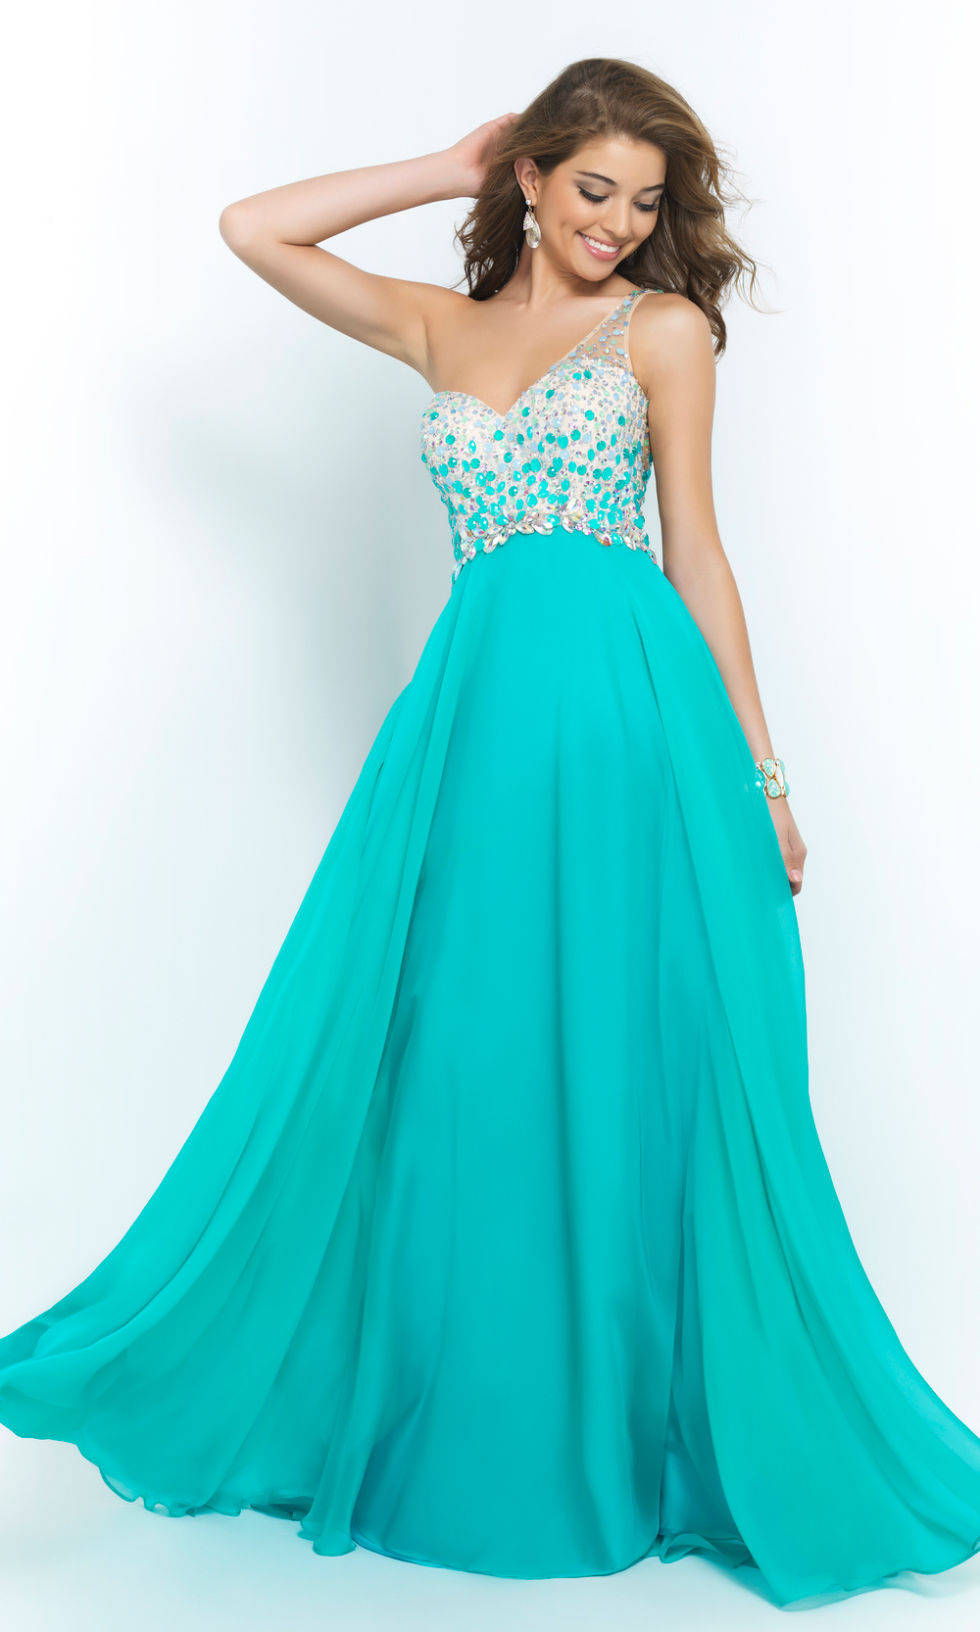 One Shoulder Dresses - Prom Dress Trends 2015